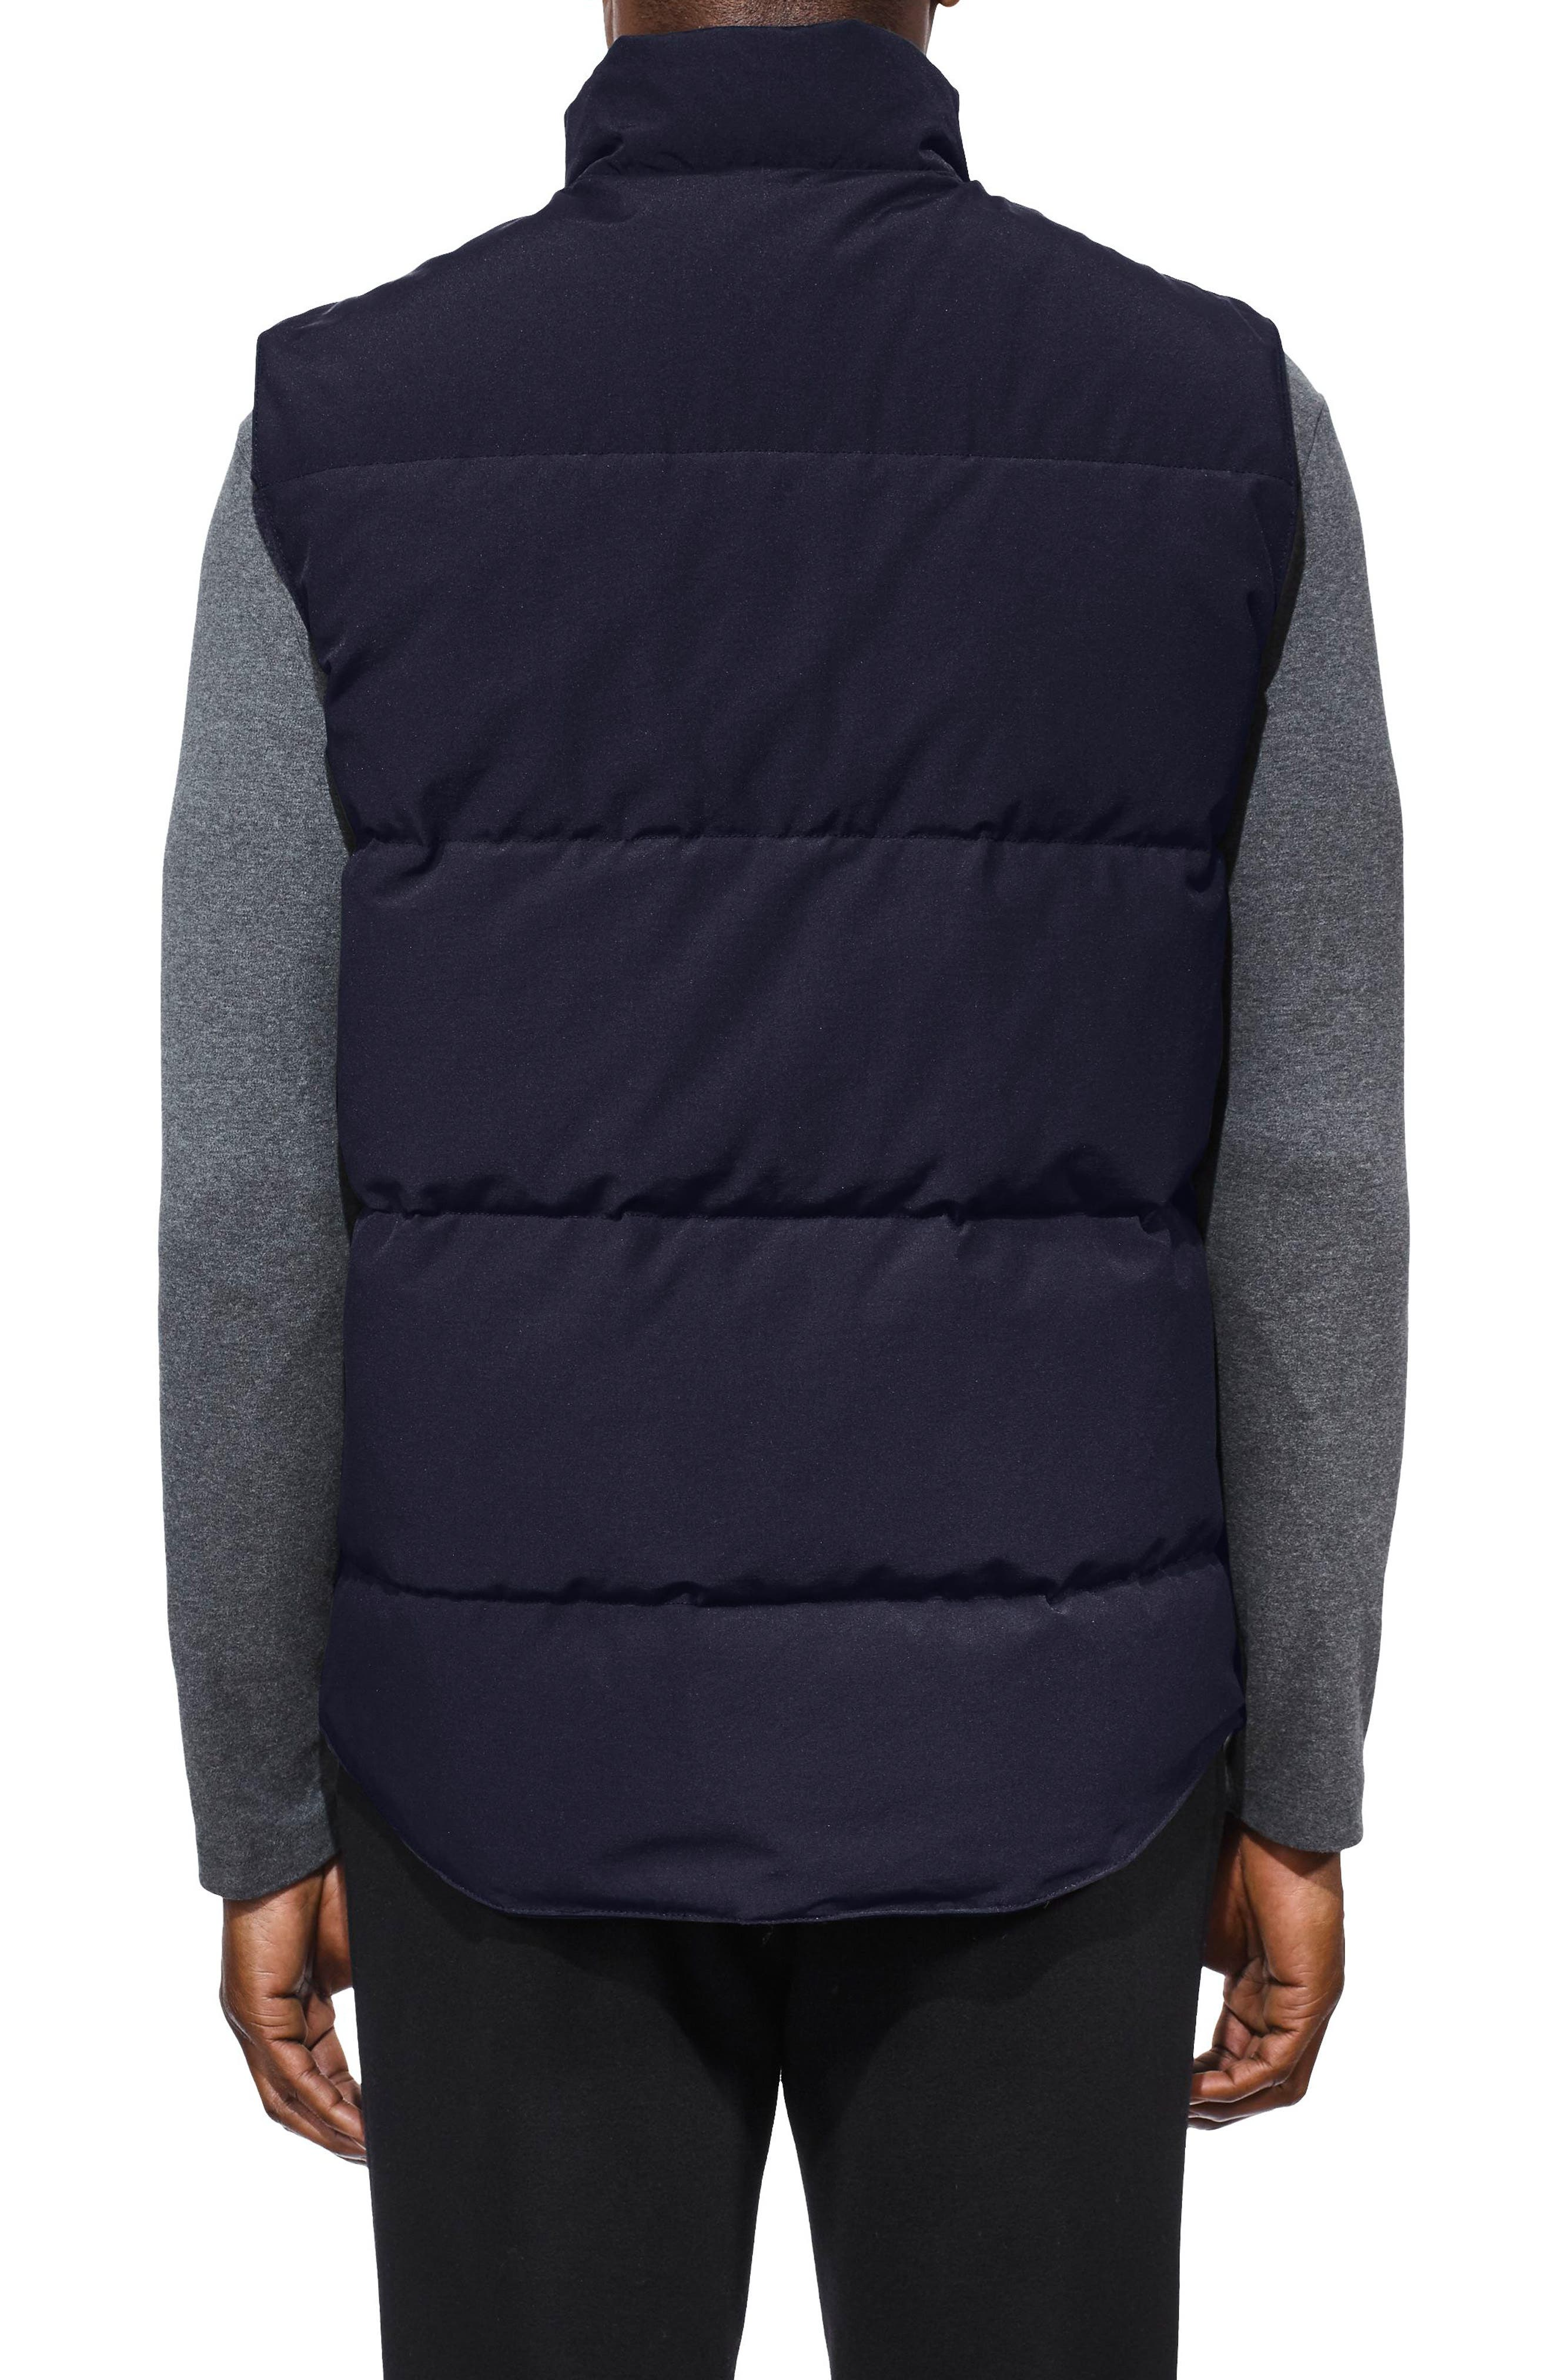 CANADA GOOSE, Freestyle Regular Fit Down Vest, Alternate thumbnail 2, color, ADMIRAL BLUE